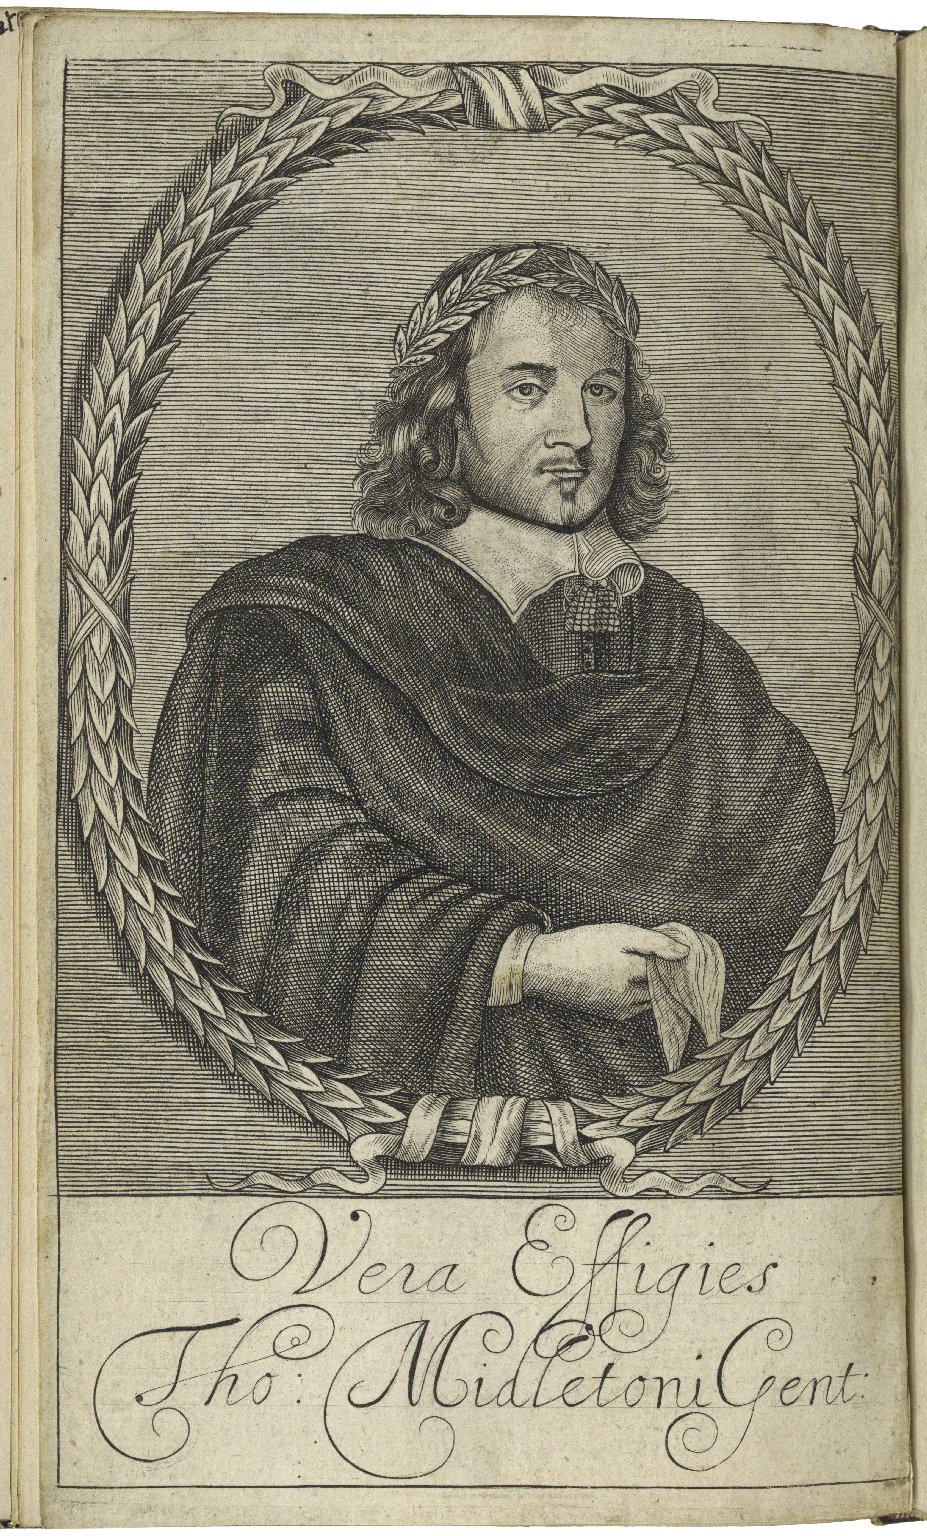 Portrait of Thomas Middleton from the frontispiece to No wit, help like a vvoman, 1657. Image courtesy of LUNA at the Folger Shakespeare Library